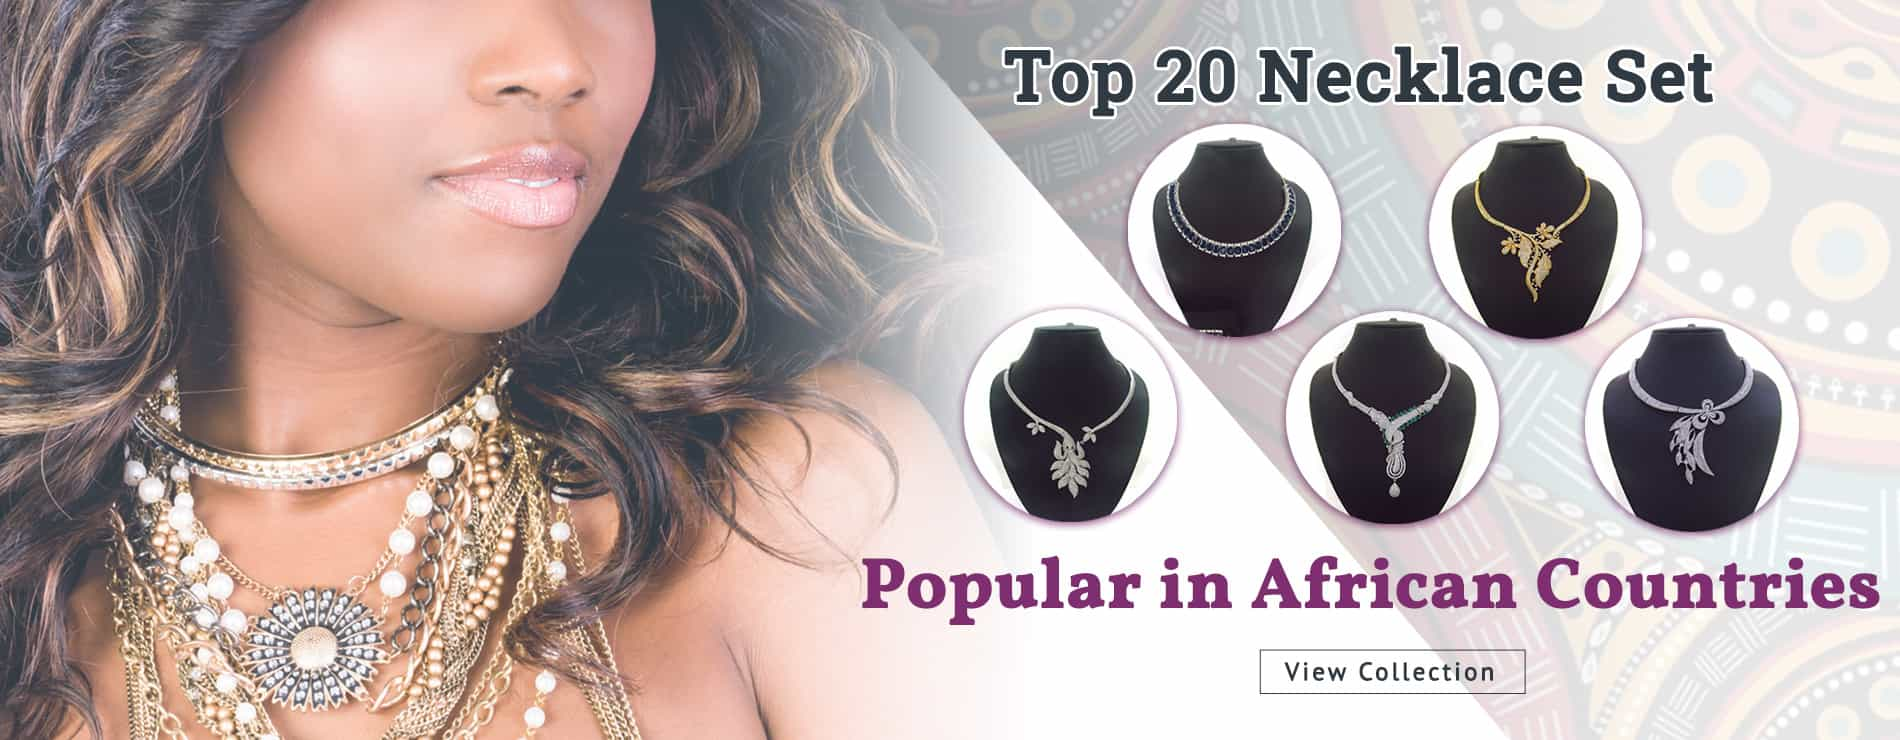 Our creations of Necklace Set Designs that are Popular In African Countries.